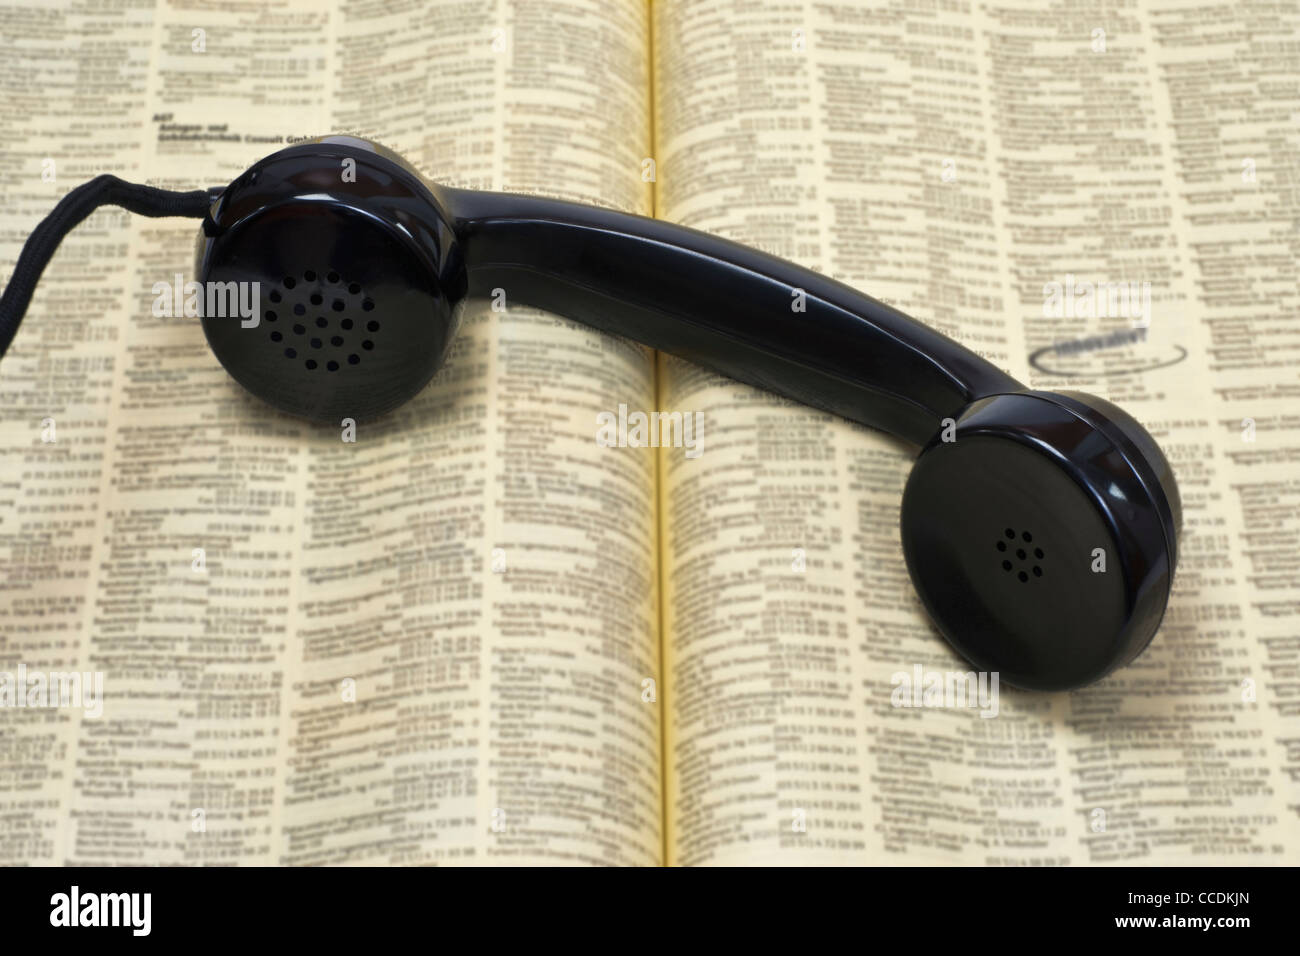 Detail photo of an old telephone receiver, lying on a phone book - Stock Image